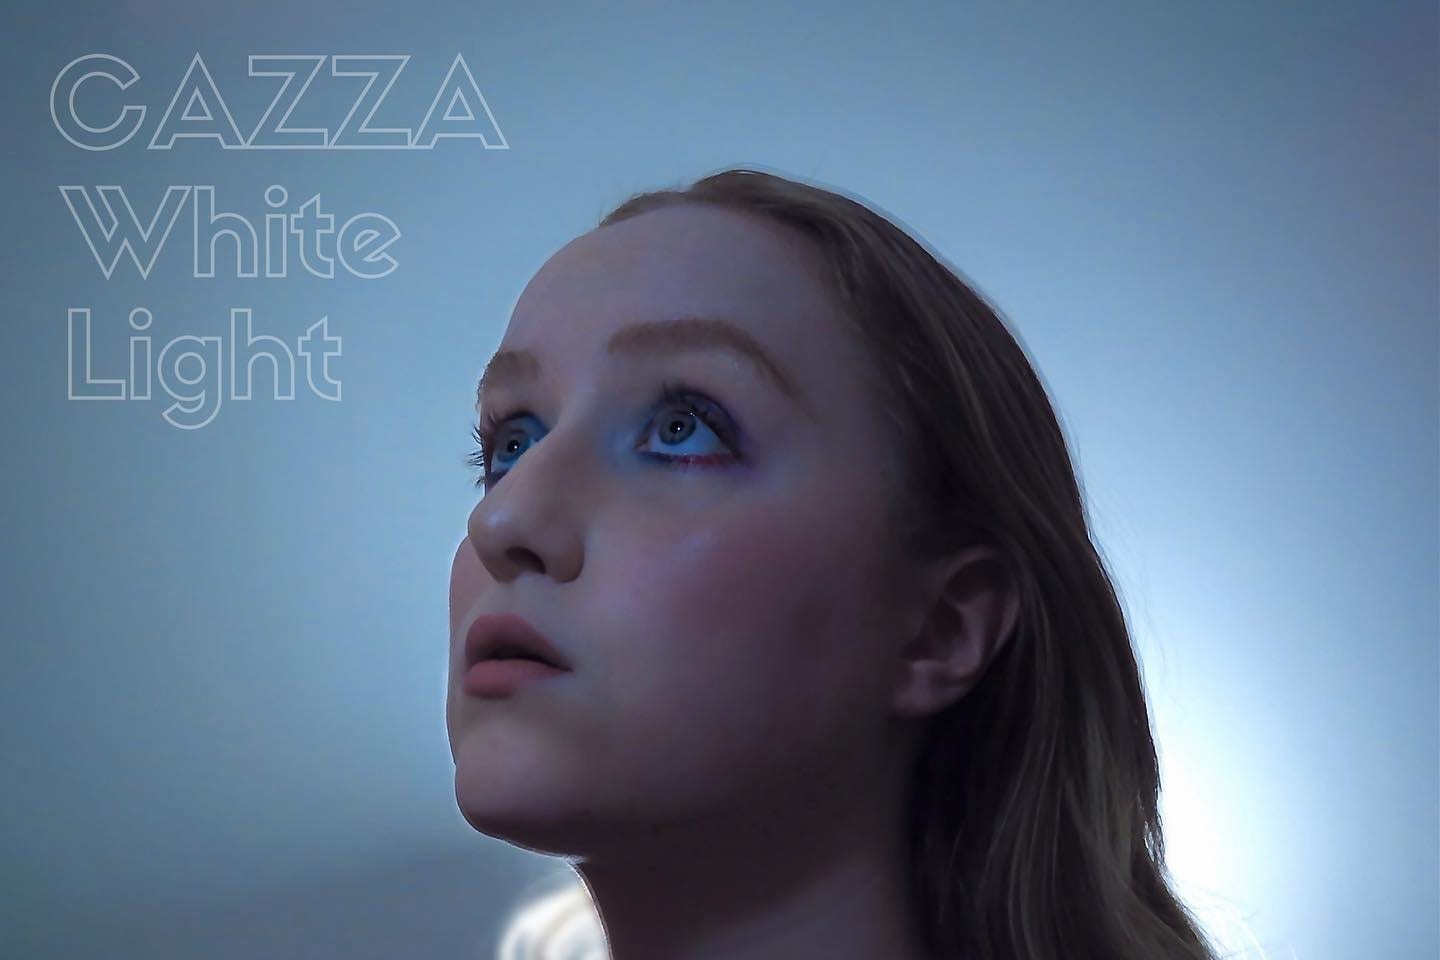 White Light – CAZZA